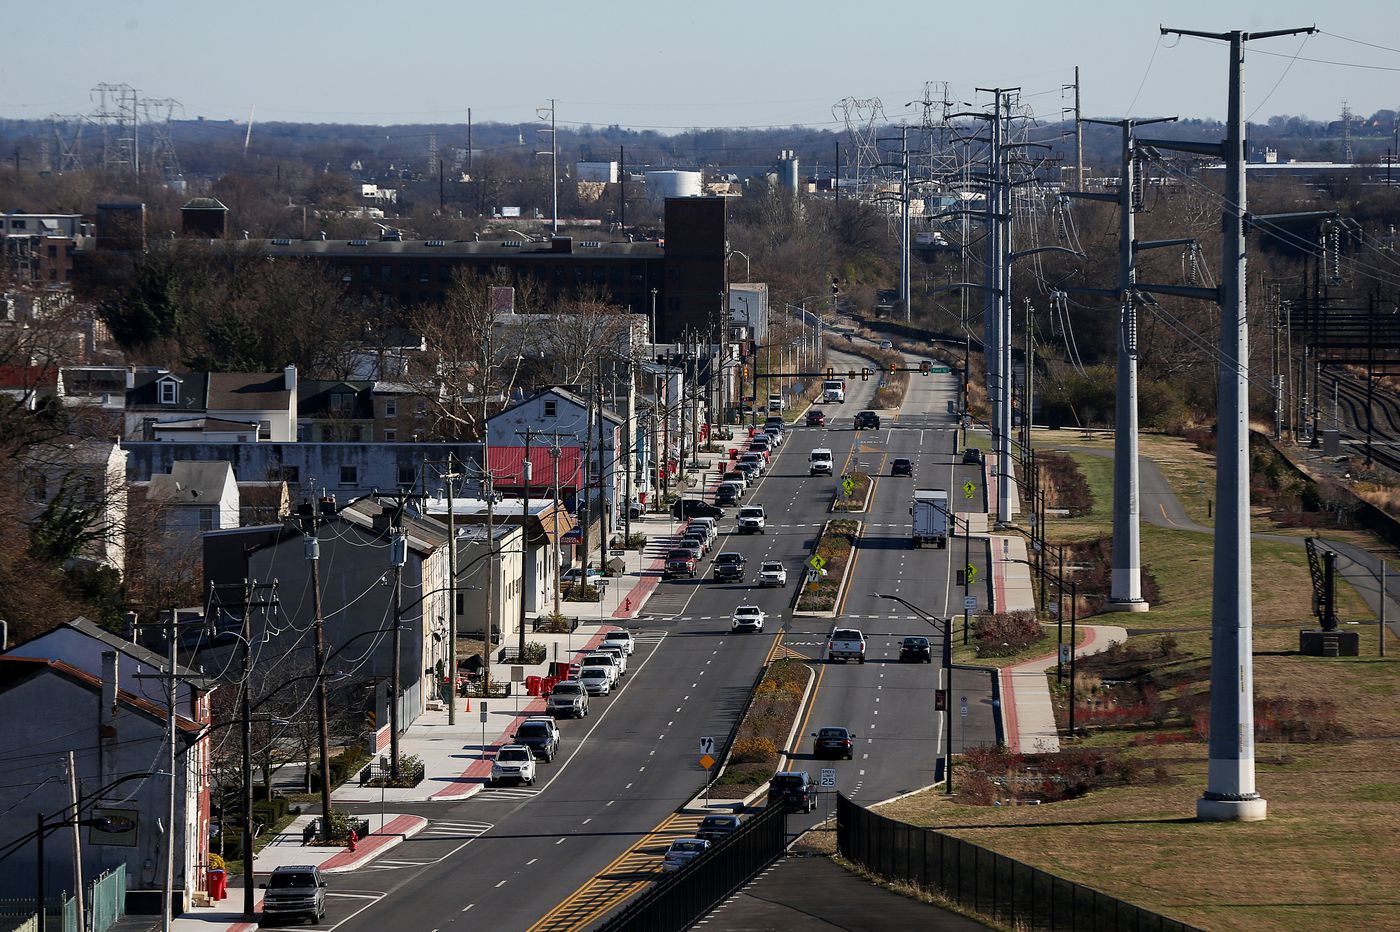 A decades-long road project aims to bring Norristown out of isolation. Will revitalization follow?